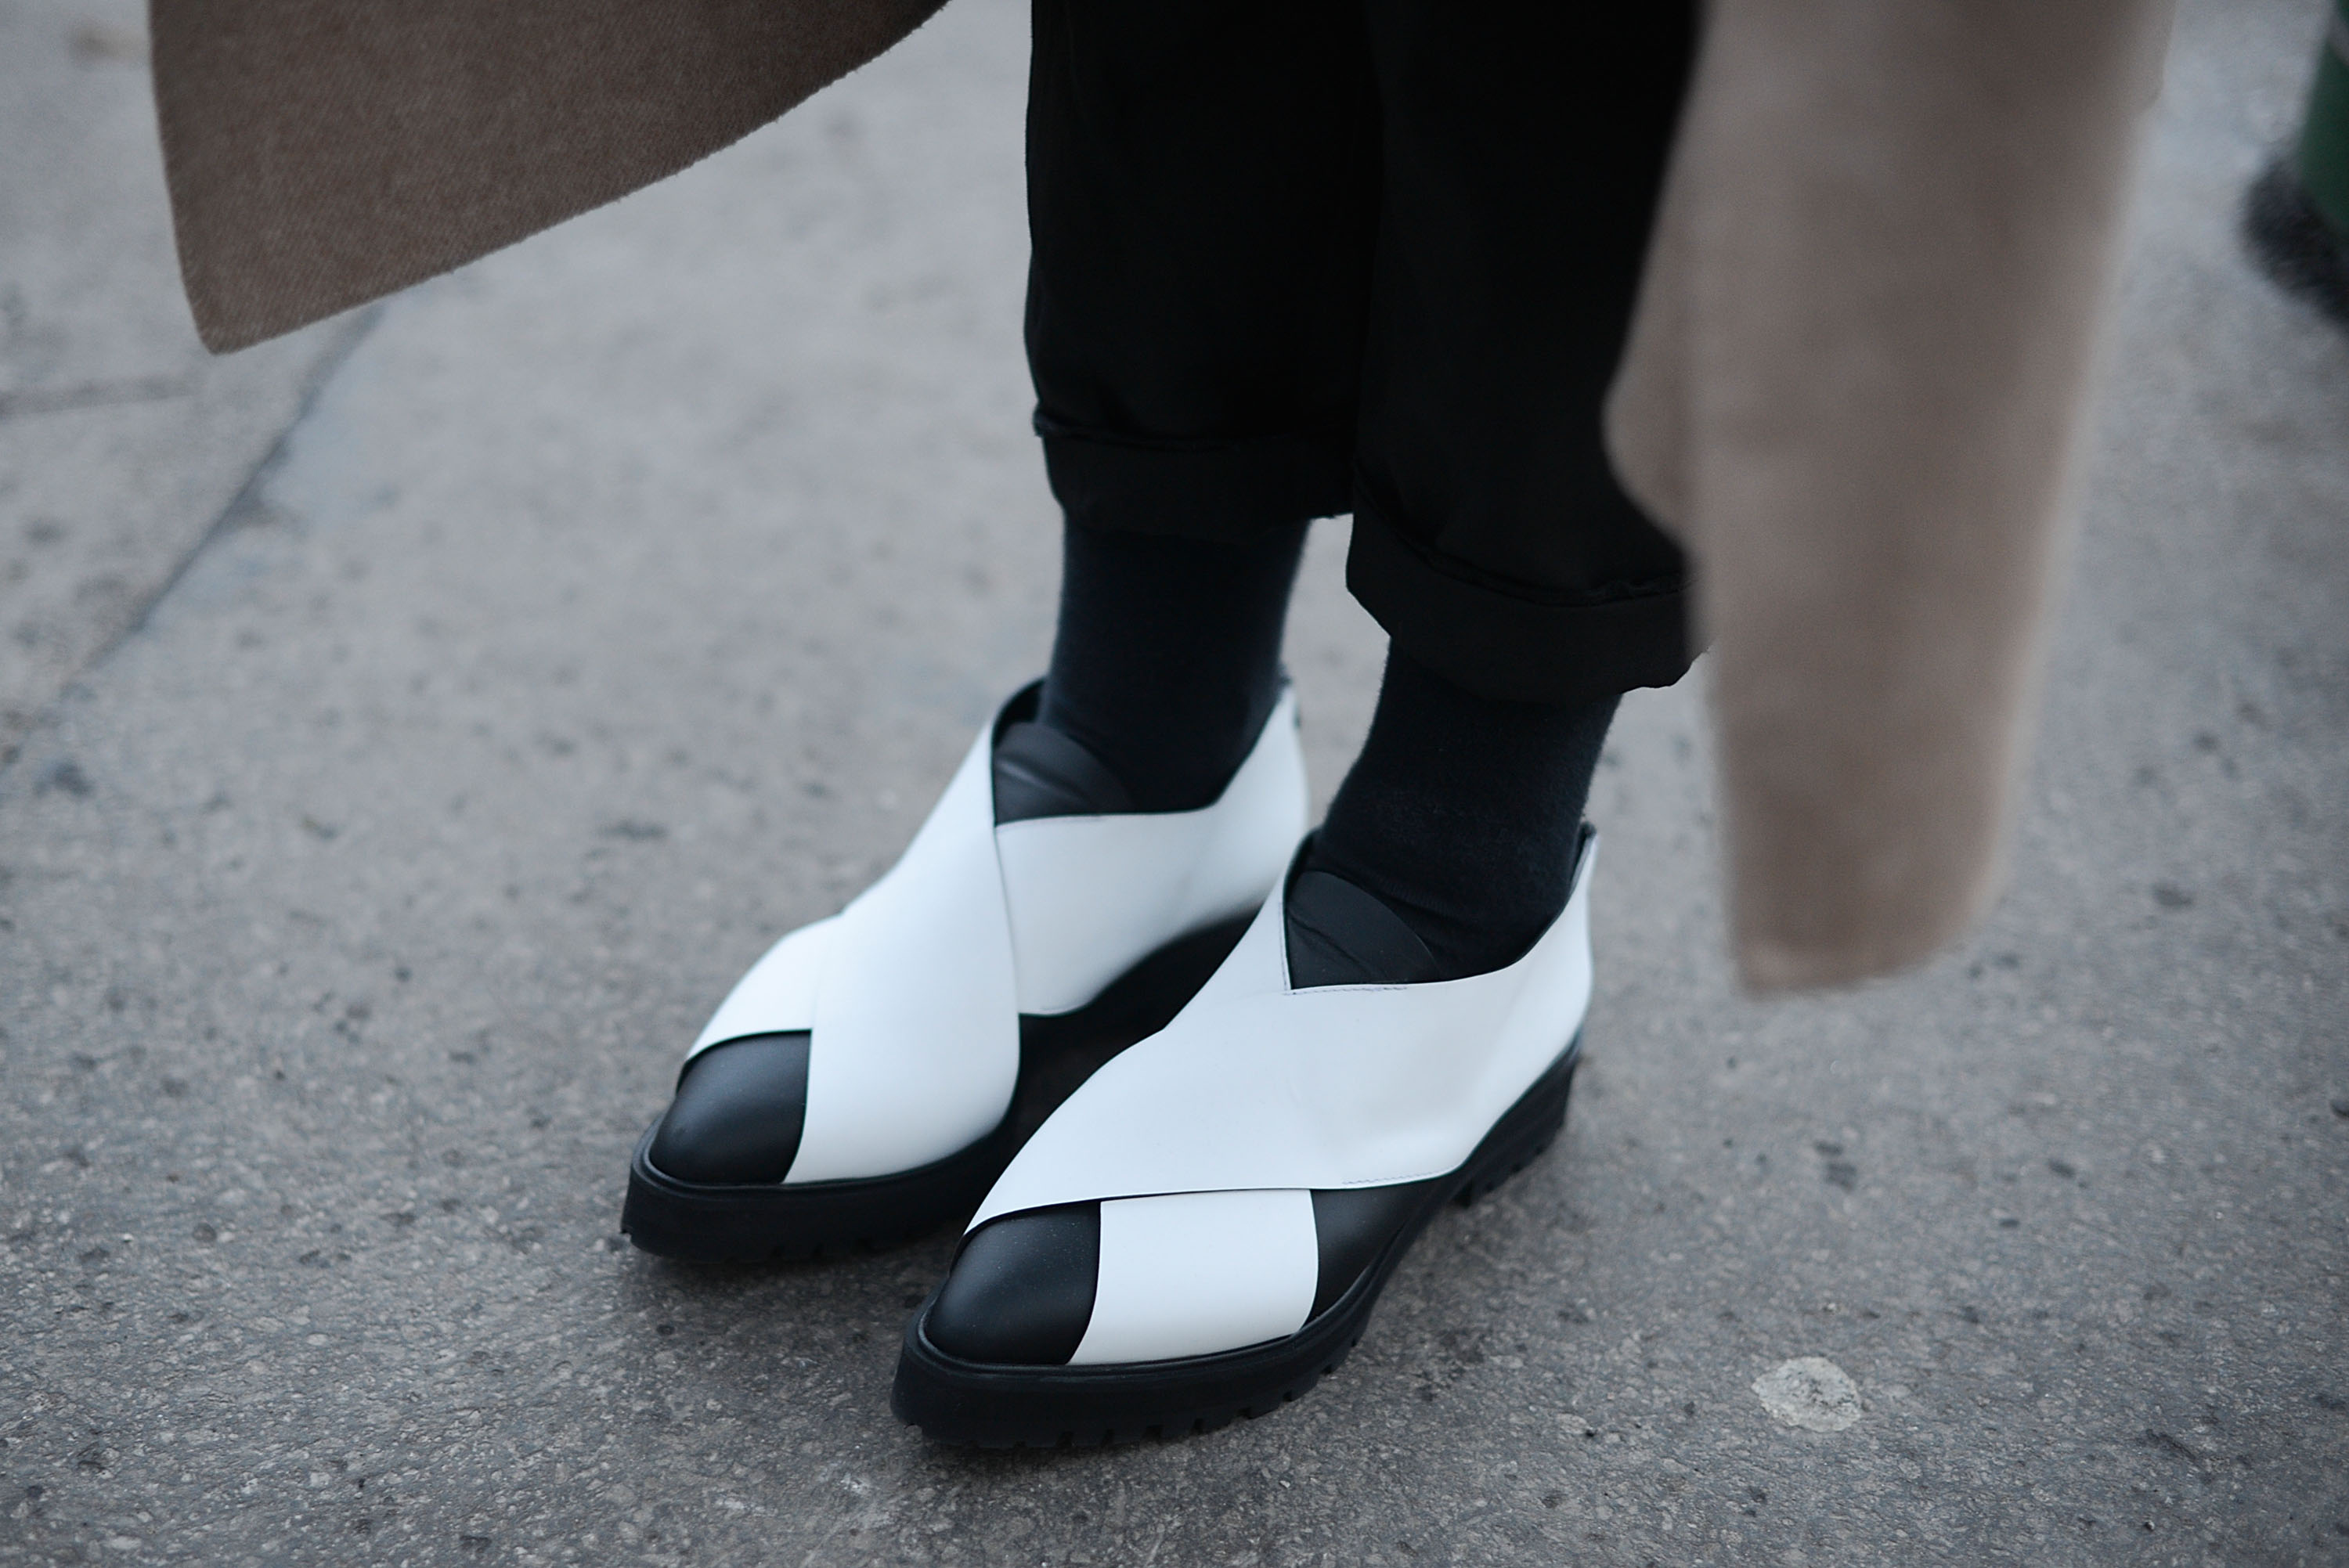 These Proenza shoes, spotted in Milan in January, were in abundance at the sale earlier this week.